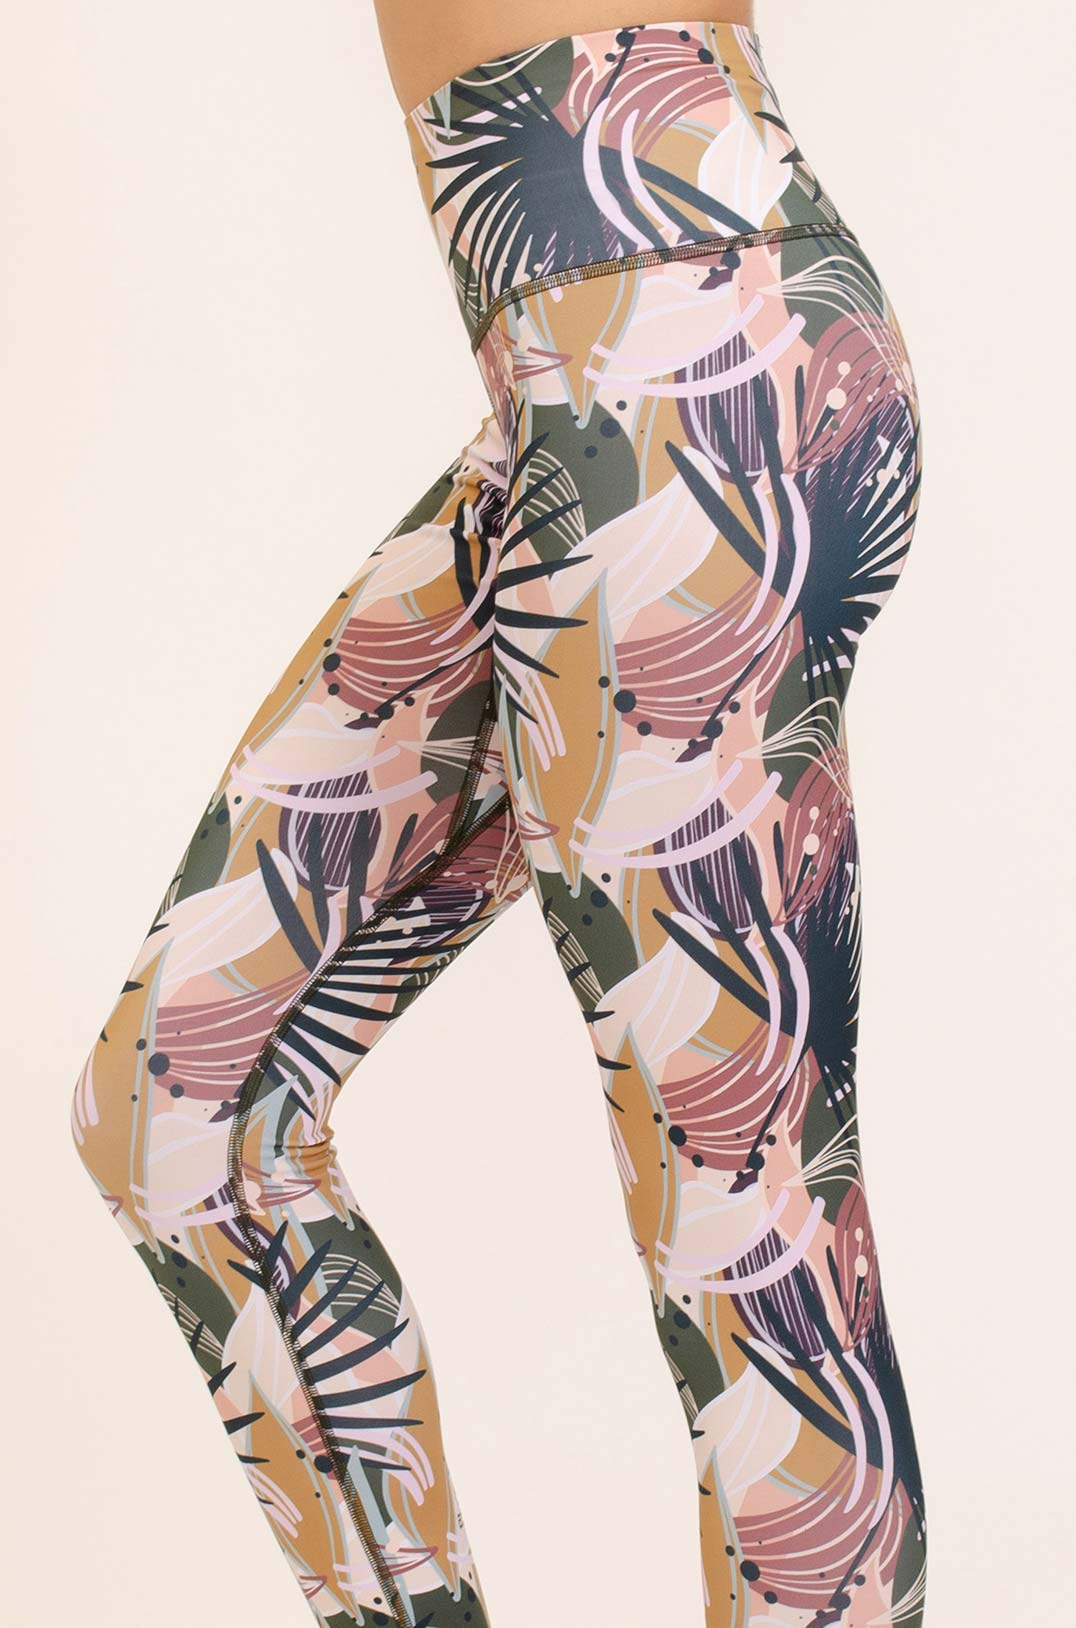 abbigliamento yoga consapevole made in italy atma feed your soul leggings tropical autumn